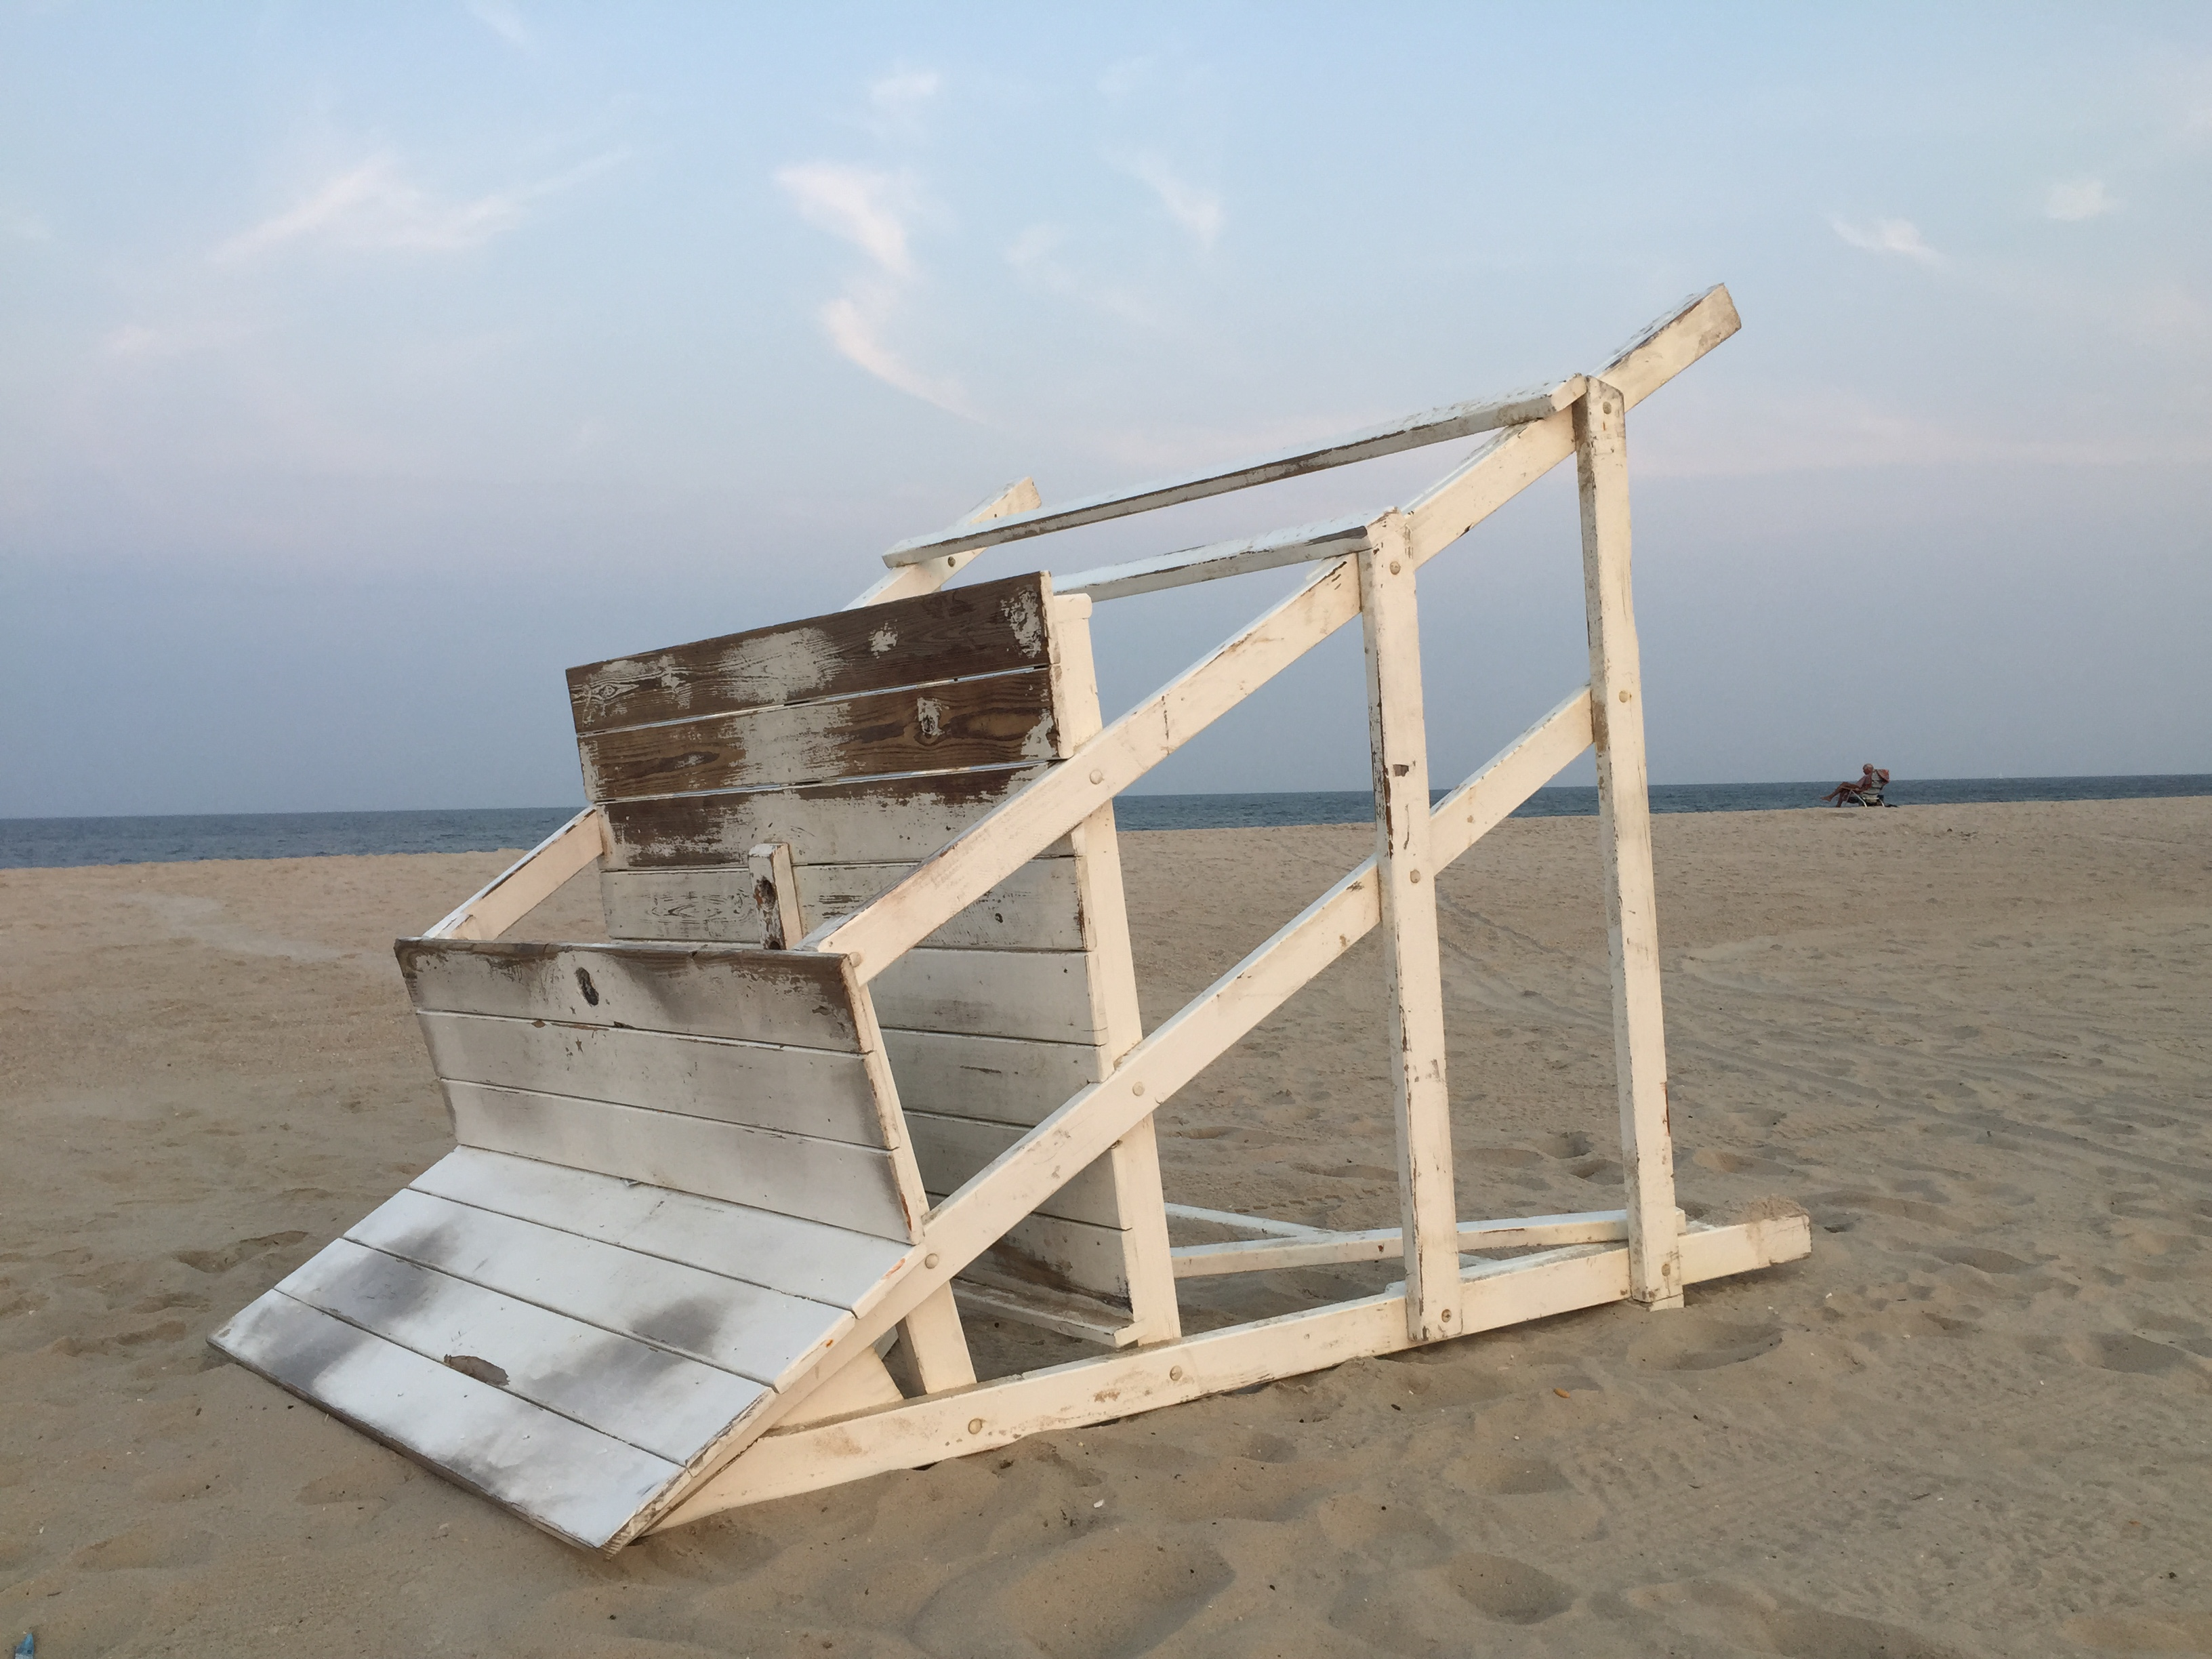 A lifeguard stand after hours in Seaside Heights, N.J. (Photo: Daniel Nee)